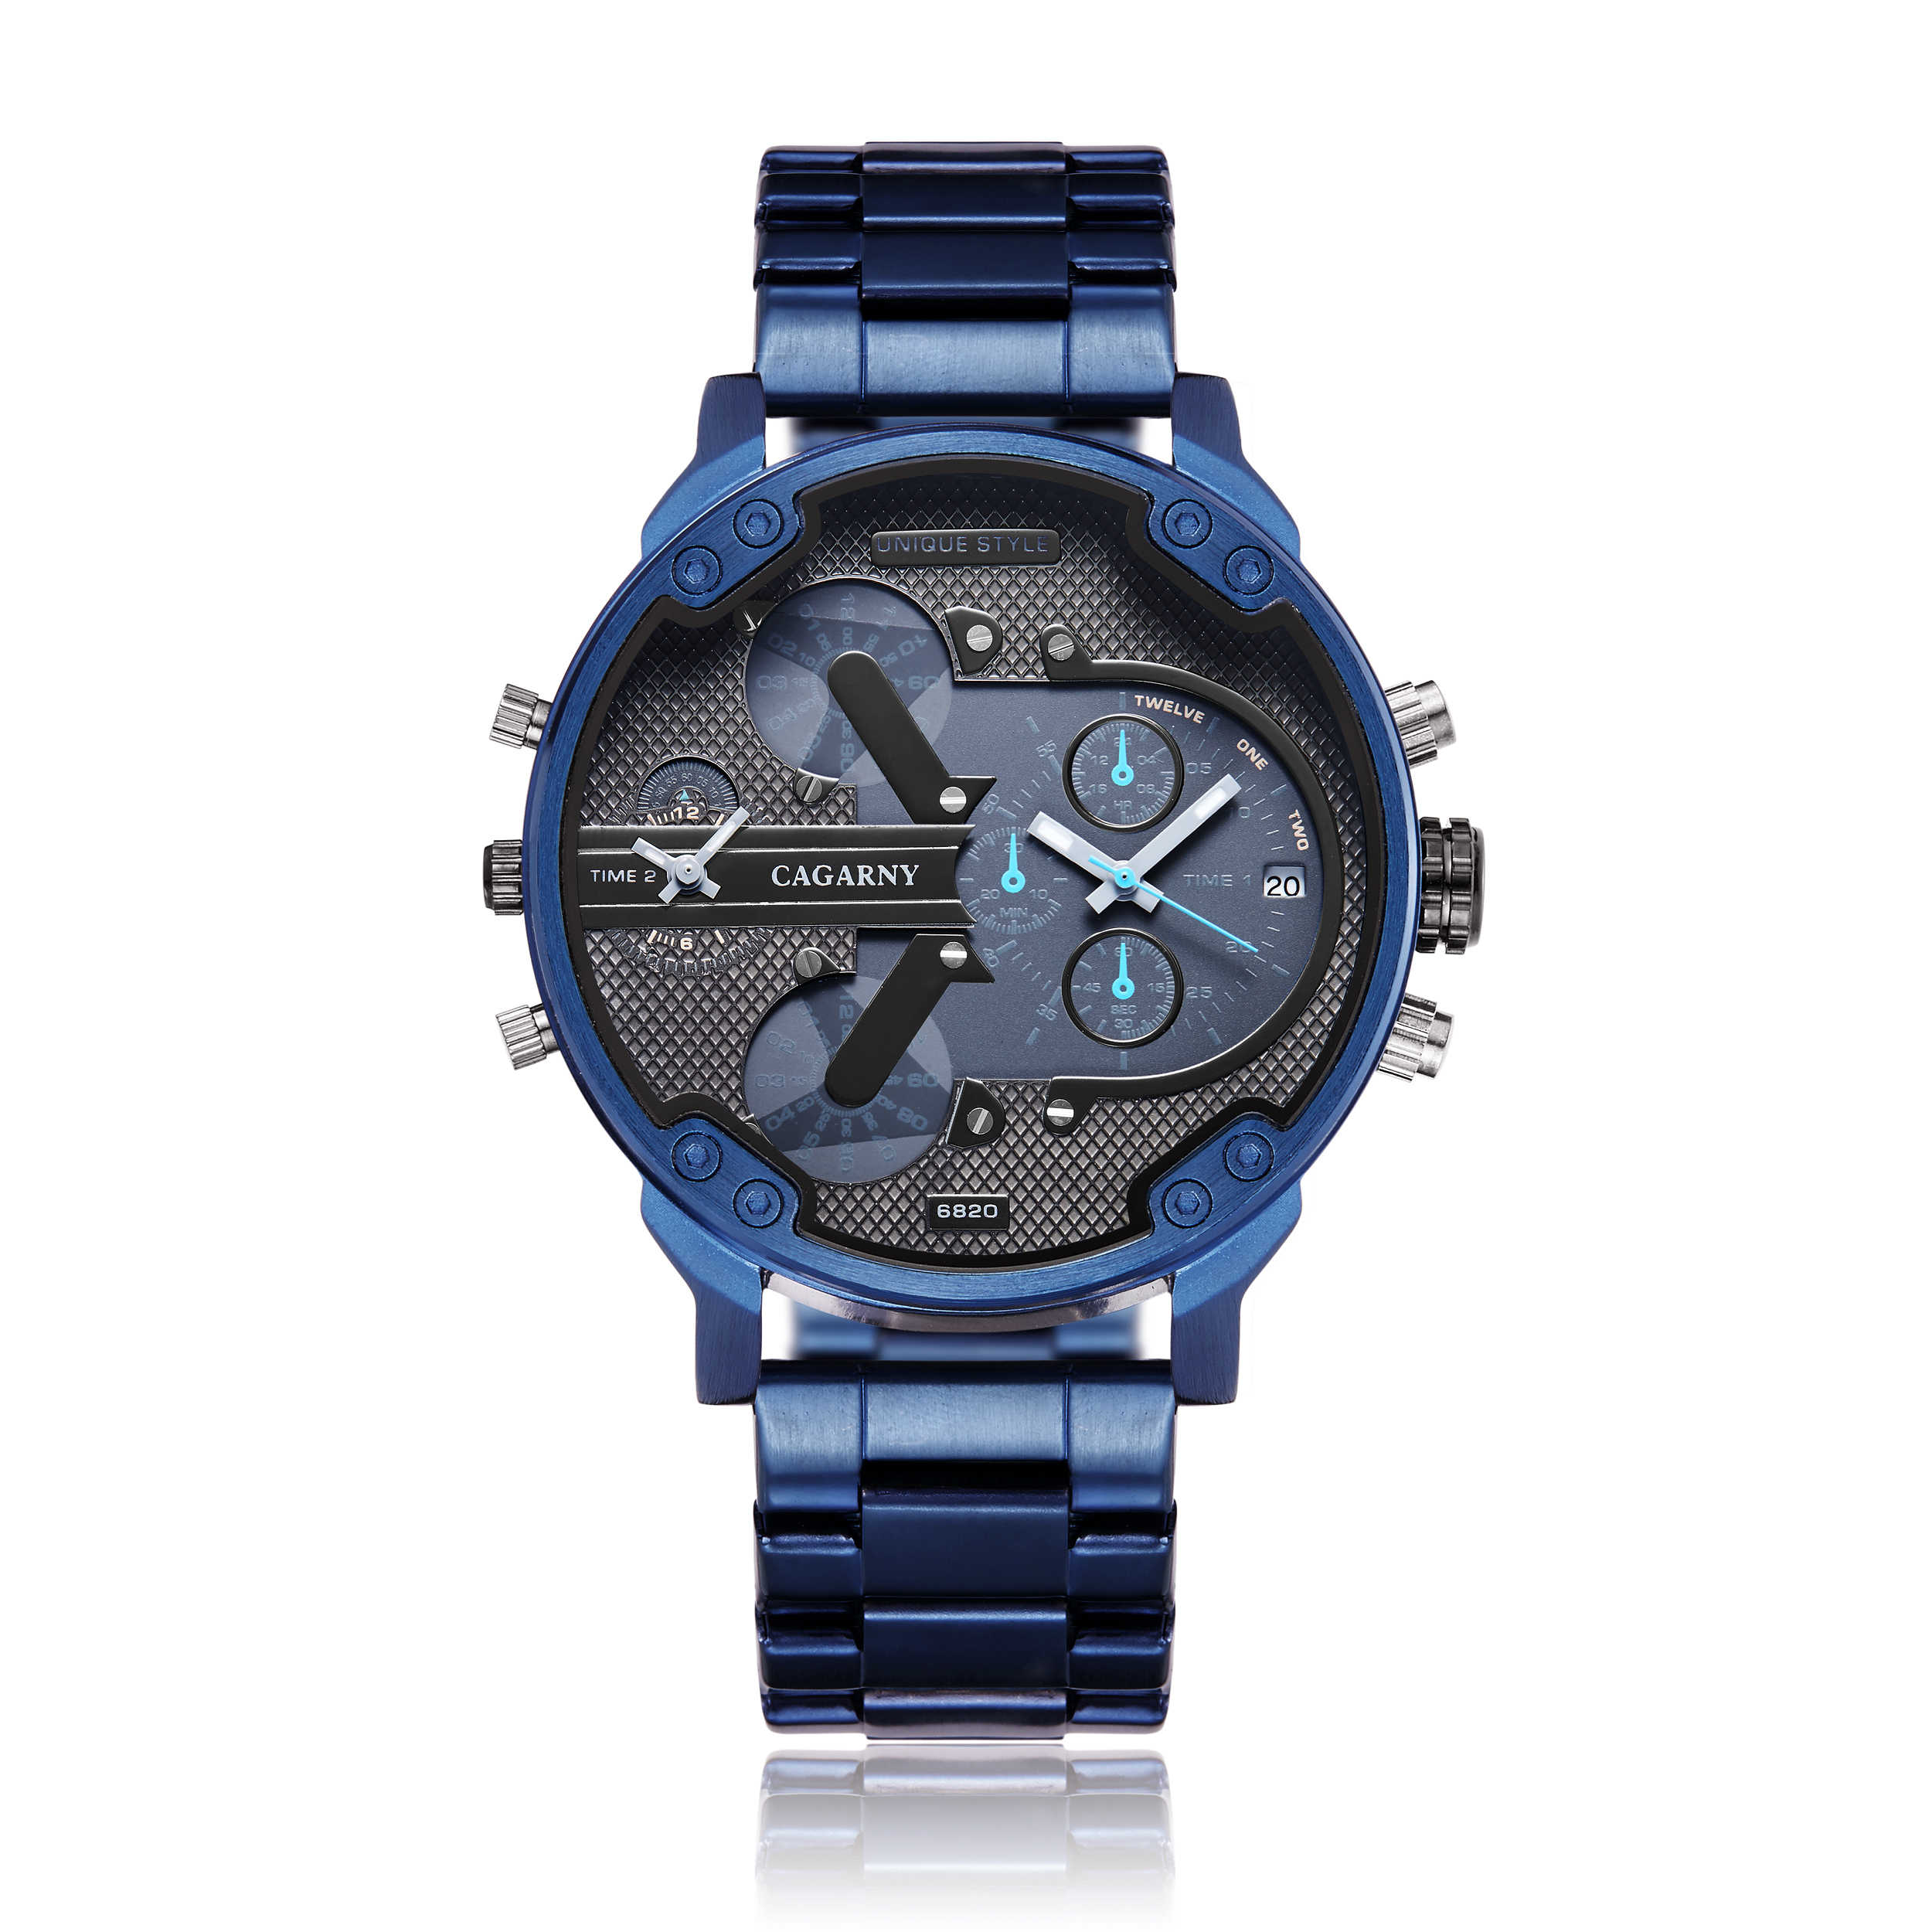 Cagarny Army Military Watches Men Brand Full Blue Steel Watch Quartz Business Watch Mans Clock Relogio Masculino Montre Homme